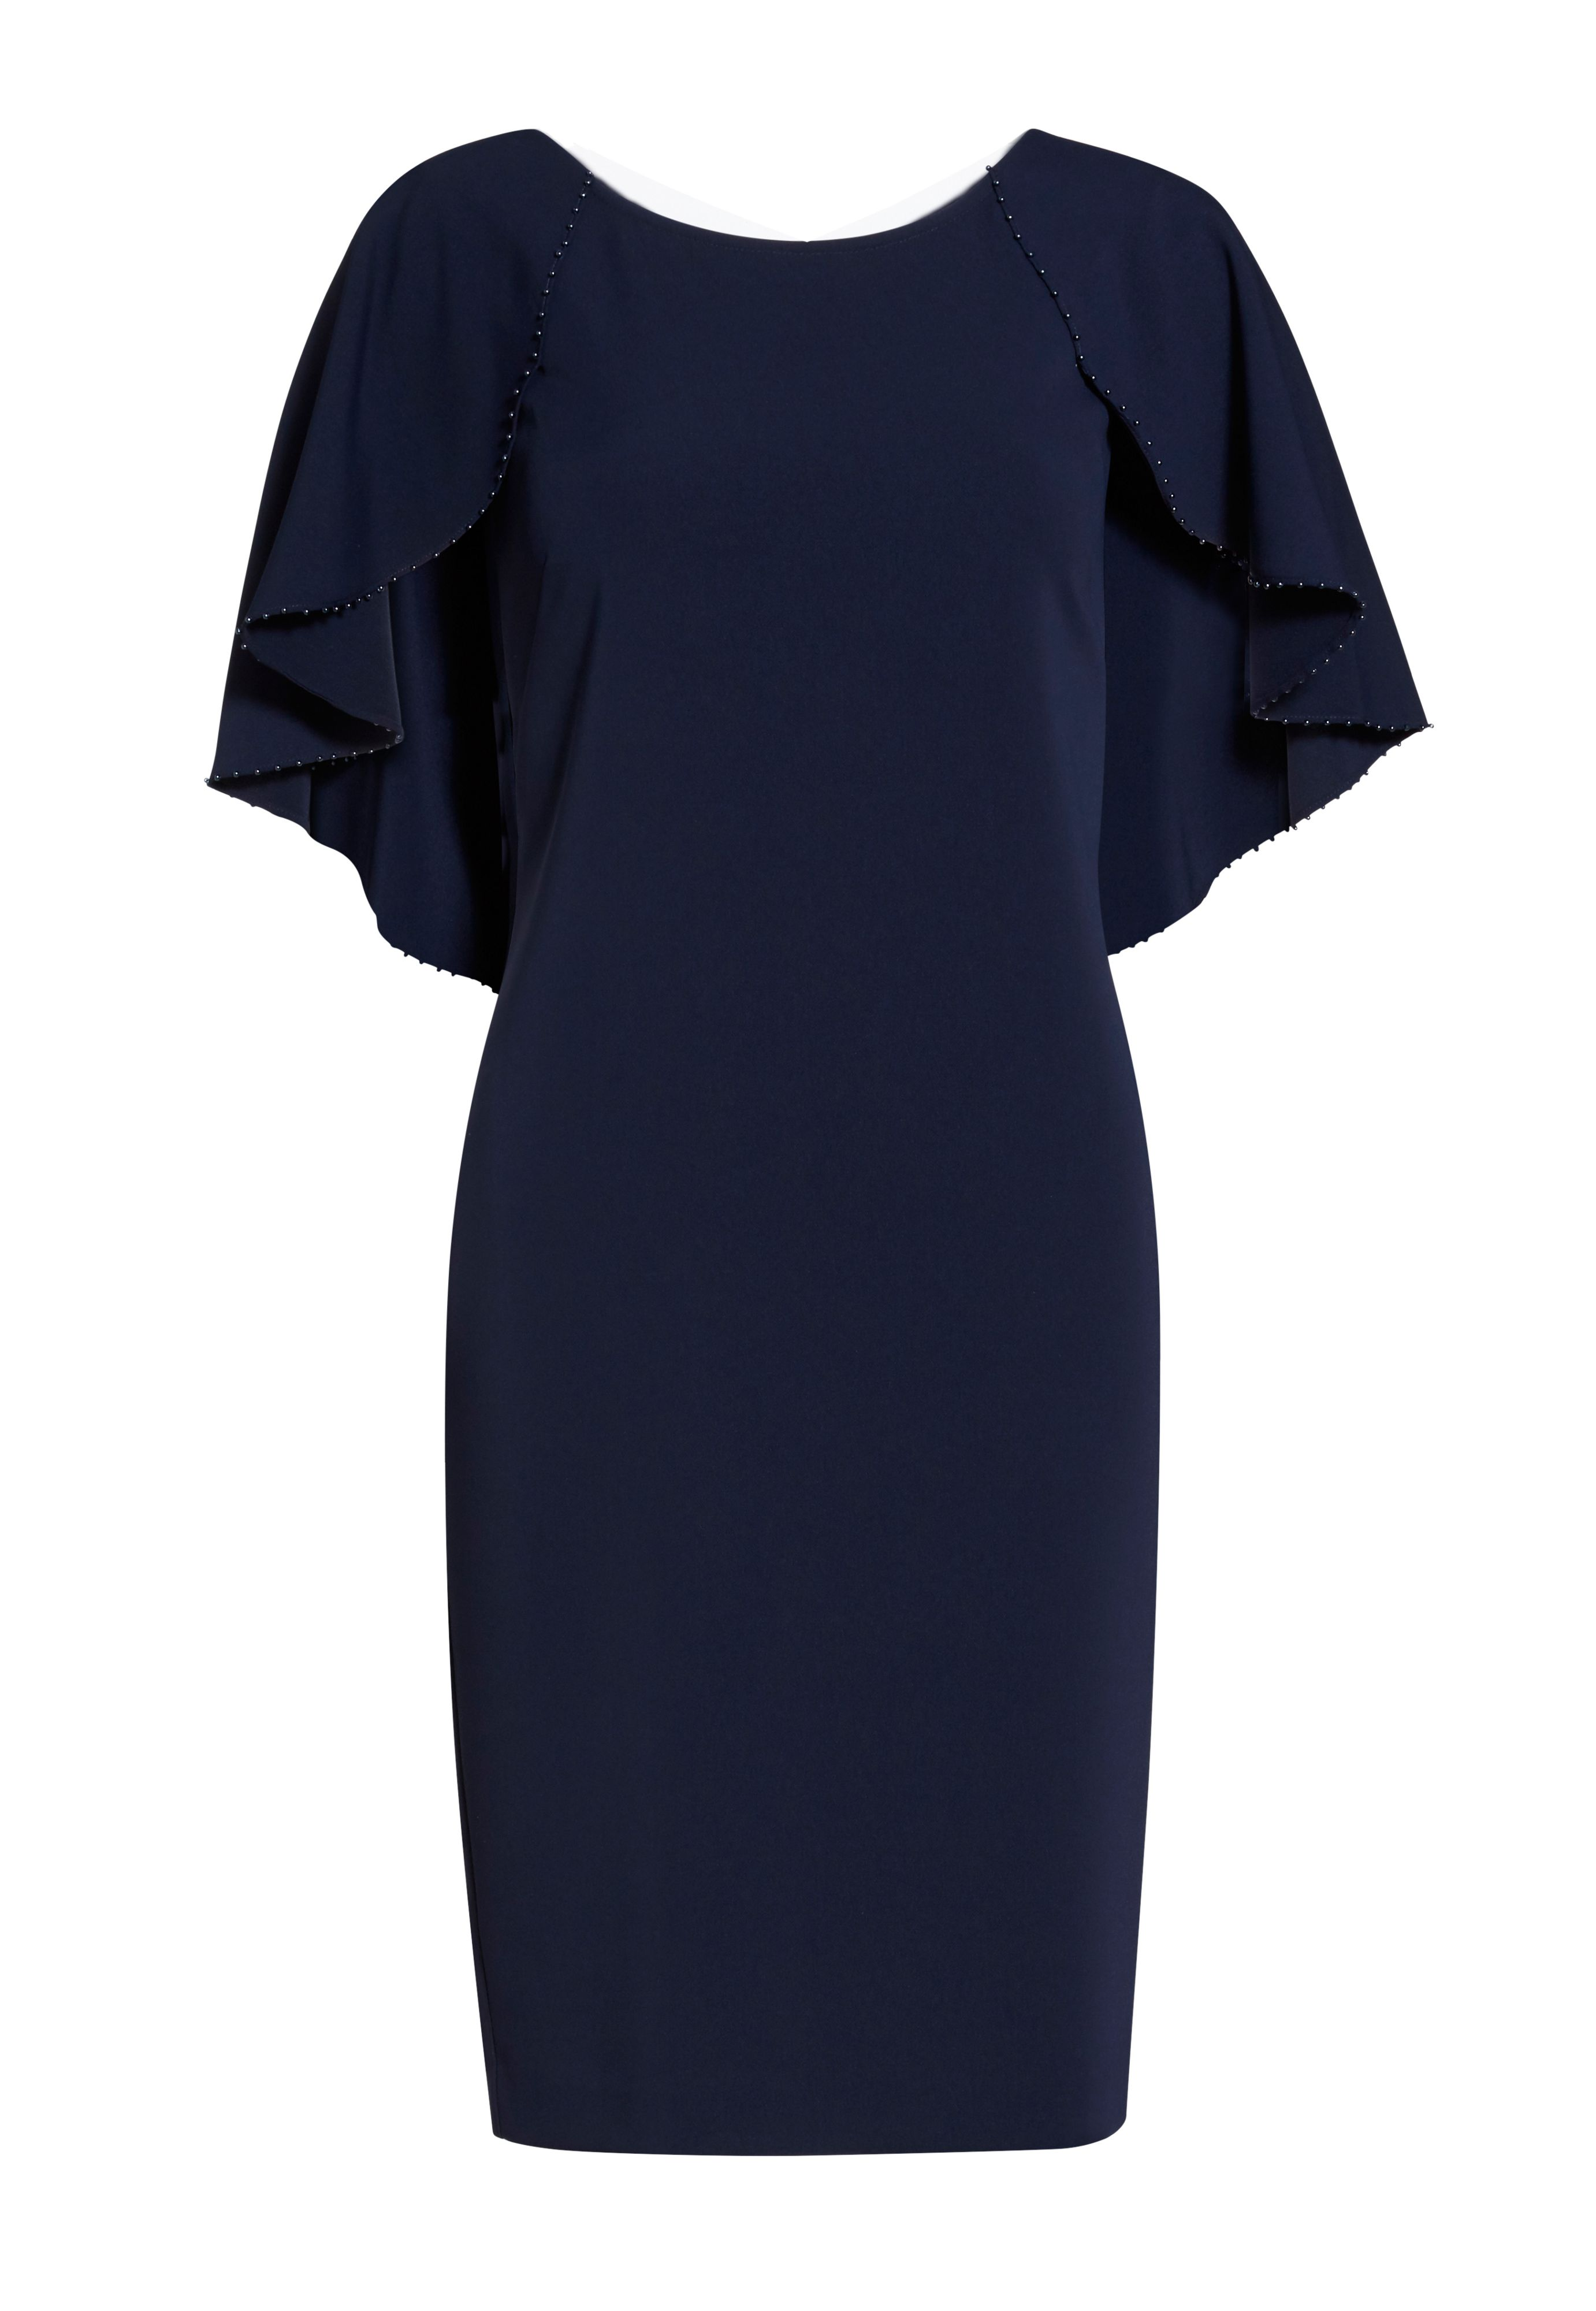 Gina Bacconi Moss Crepe Dress with Beaded Edge Cape, Blue